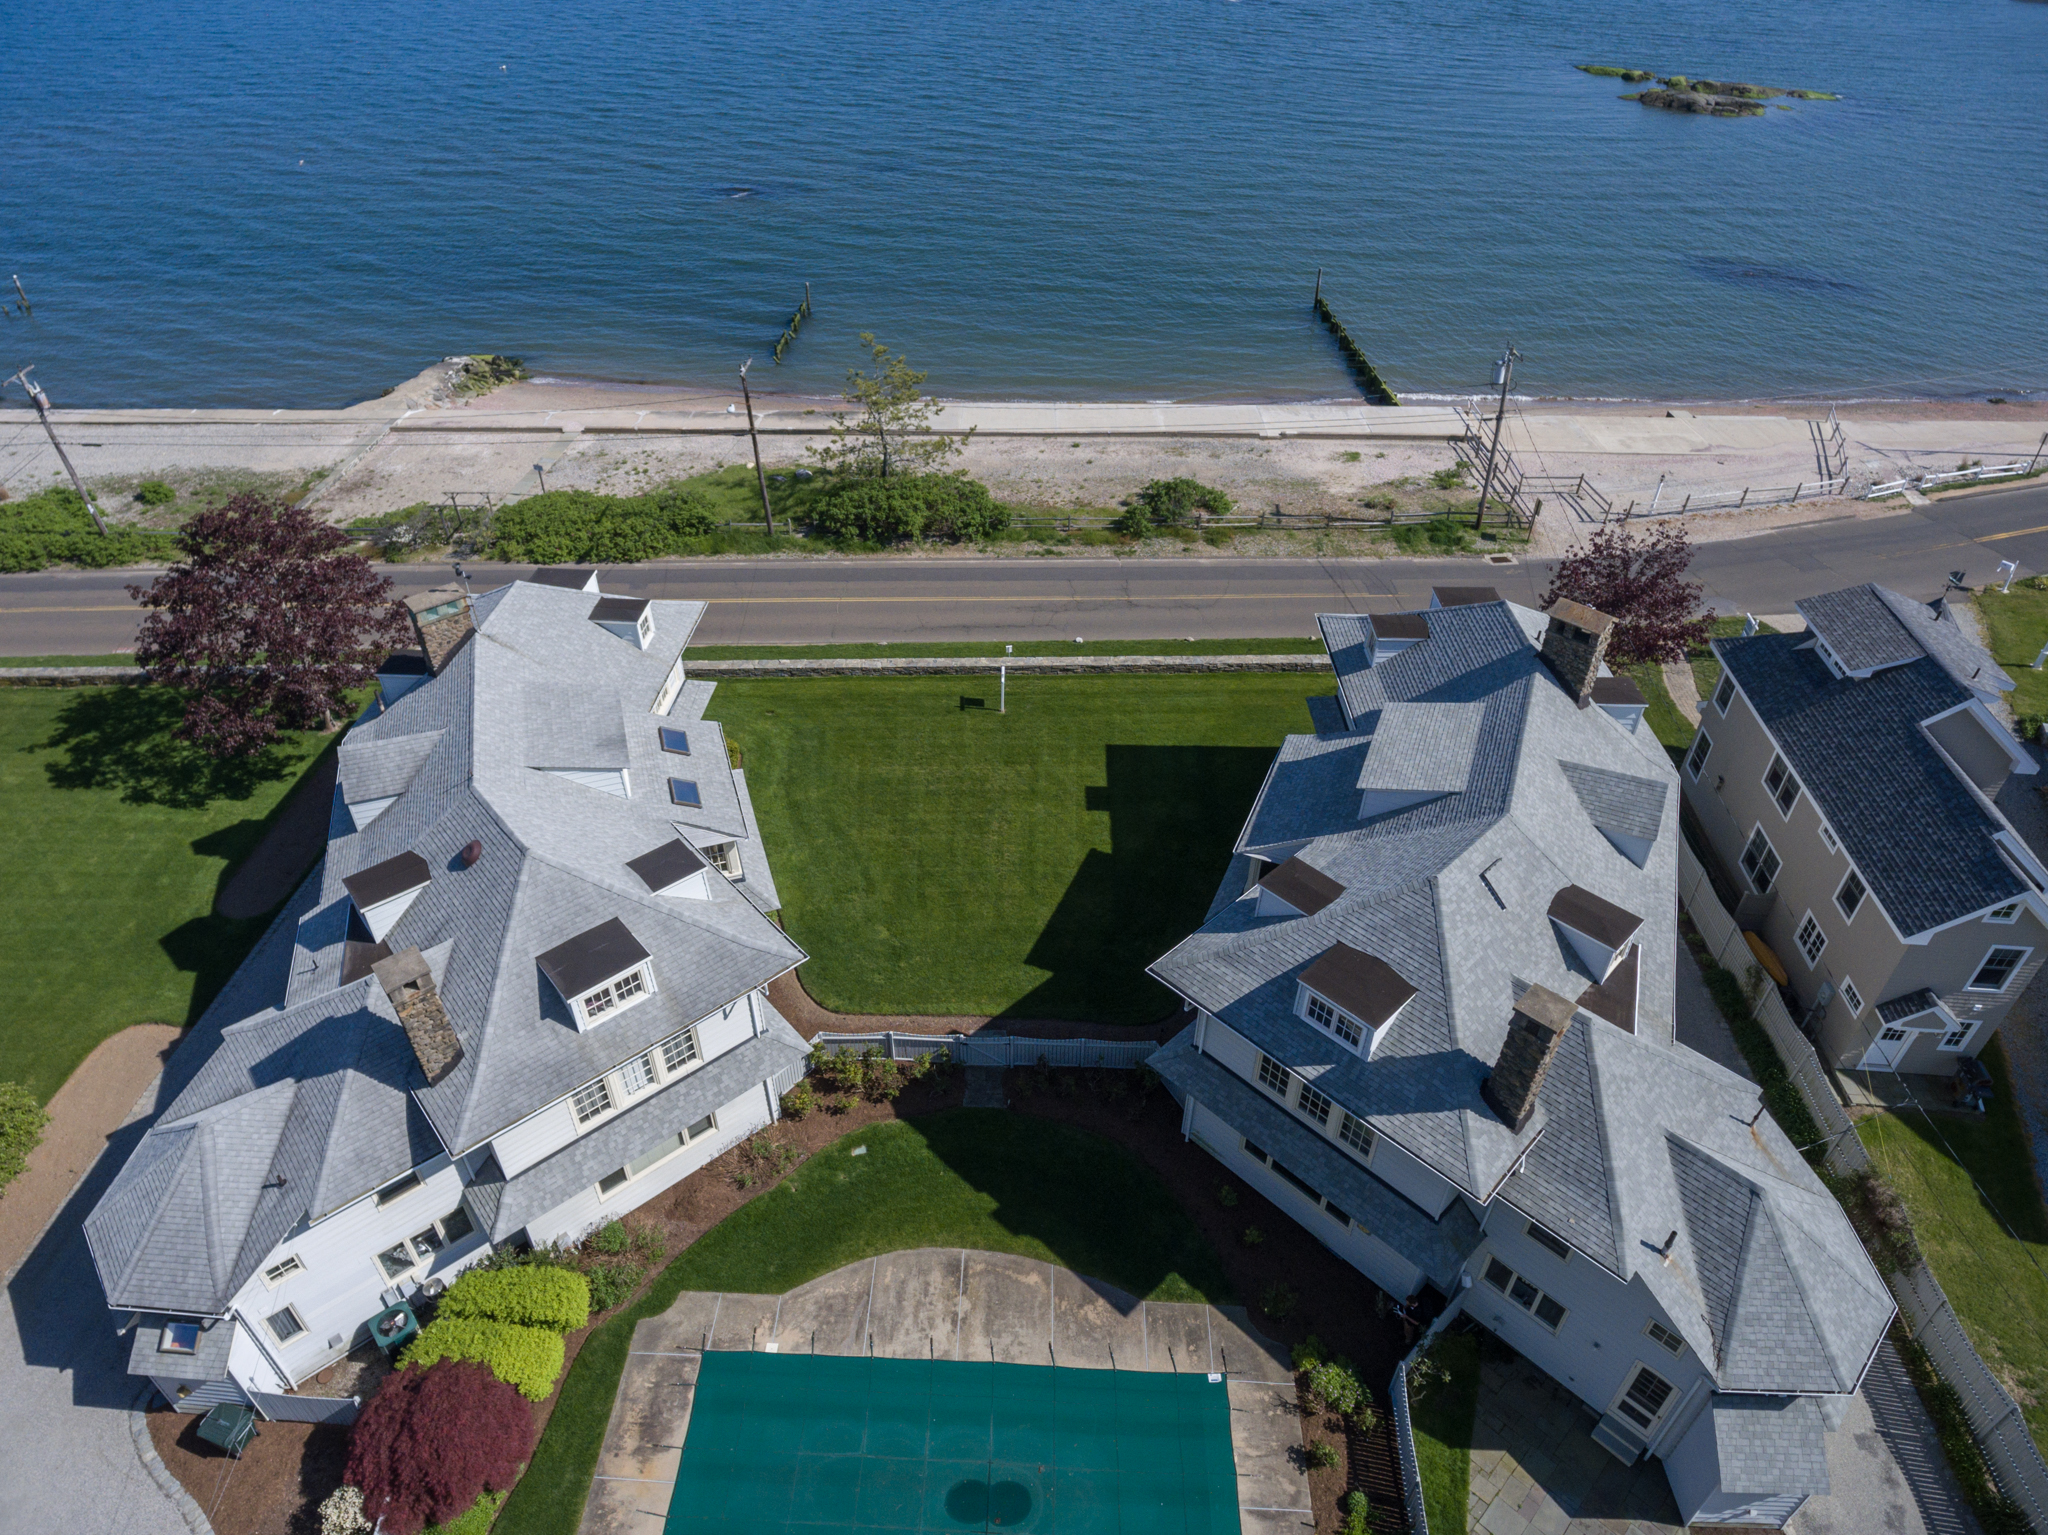 Casa Unifamiliar por un Venta en 61 Middle Beach Rd Madison, Connecticut, 06443 Estados Unidos